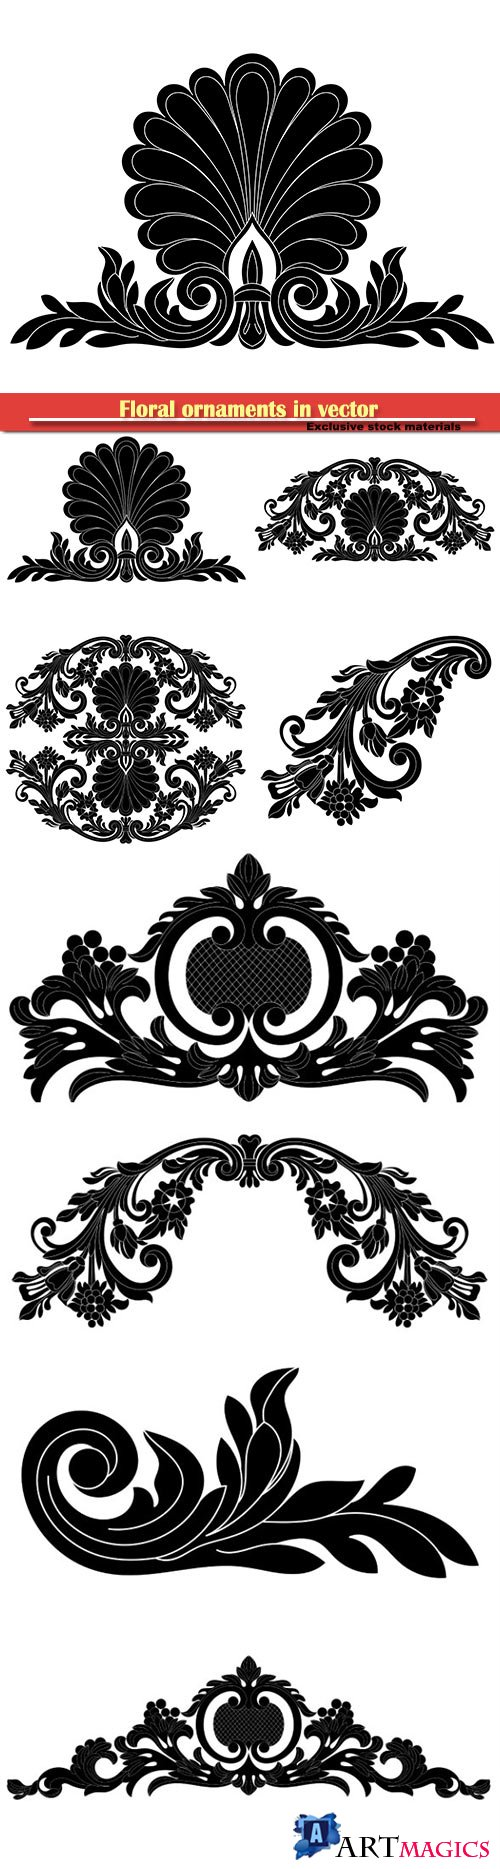 Floral ornaments in vector